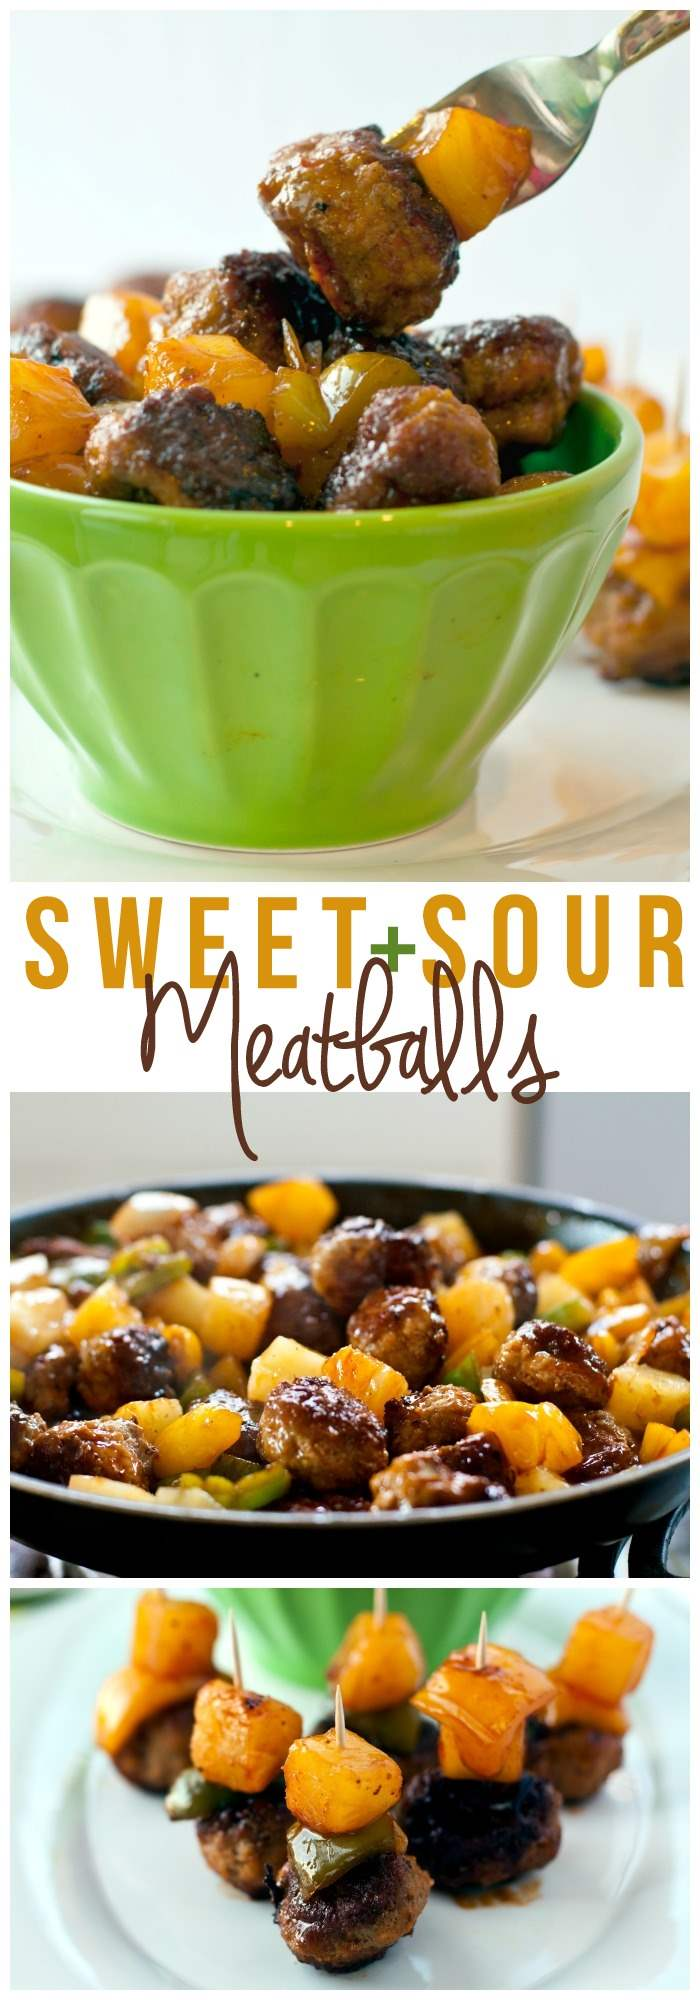 A collage of sweet and sour cocktail meatballs with text overlay for social media